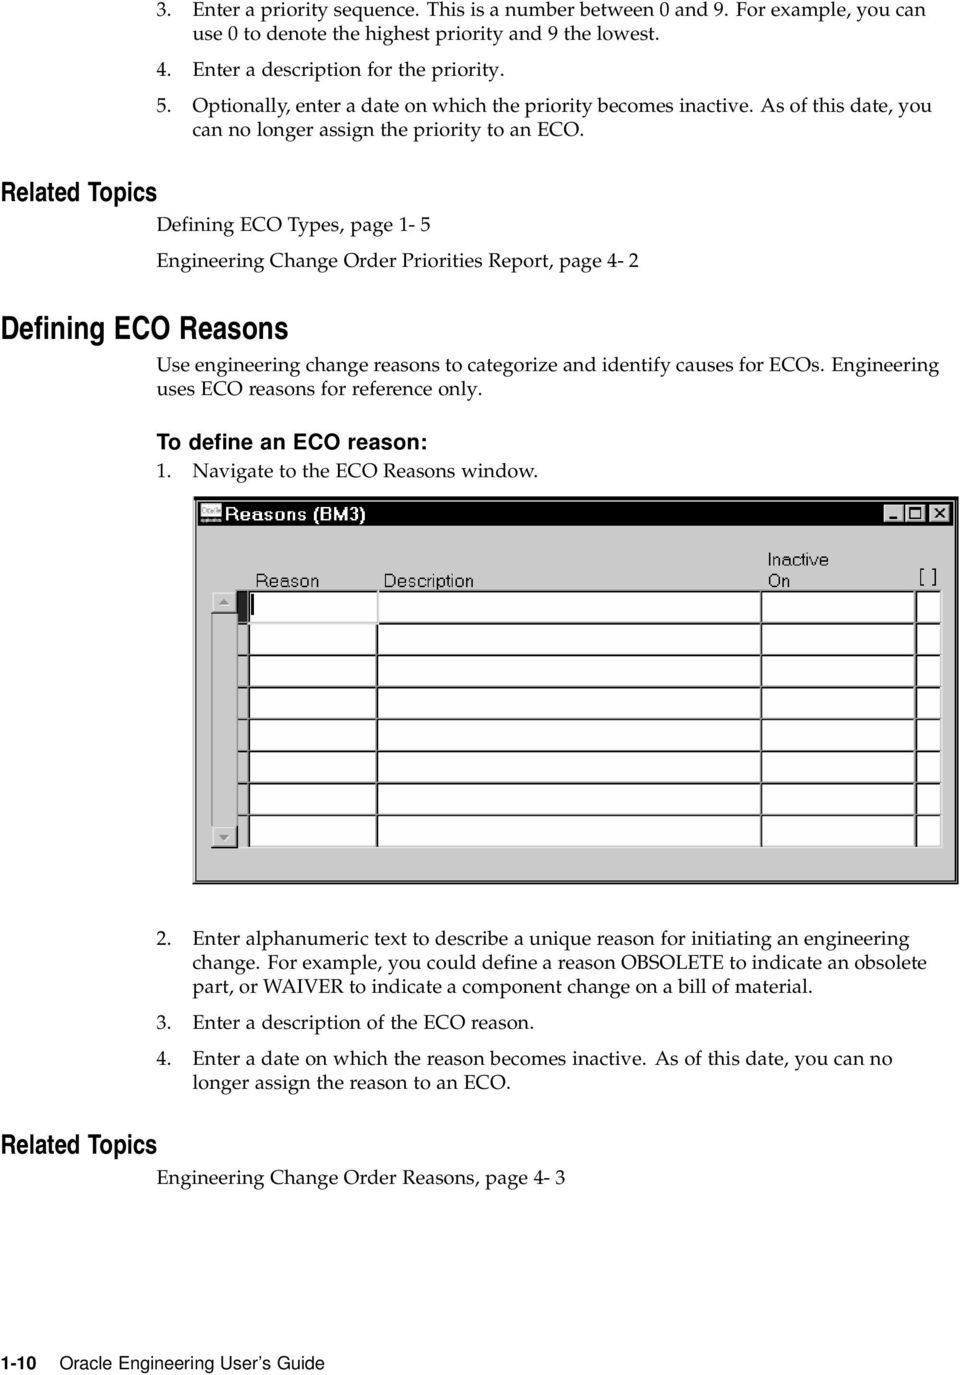 Related Topics Defining ECO Types, page 1-5 Engineering Change Order Priorities Report, page 4-2 Defining ECO Reasons Use engineering change reasons to categorize and identify causes for ECOs.